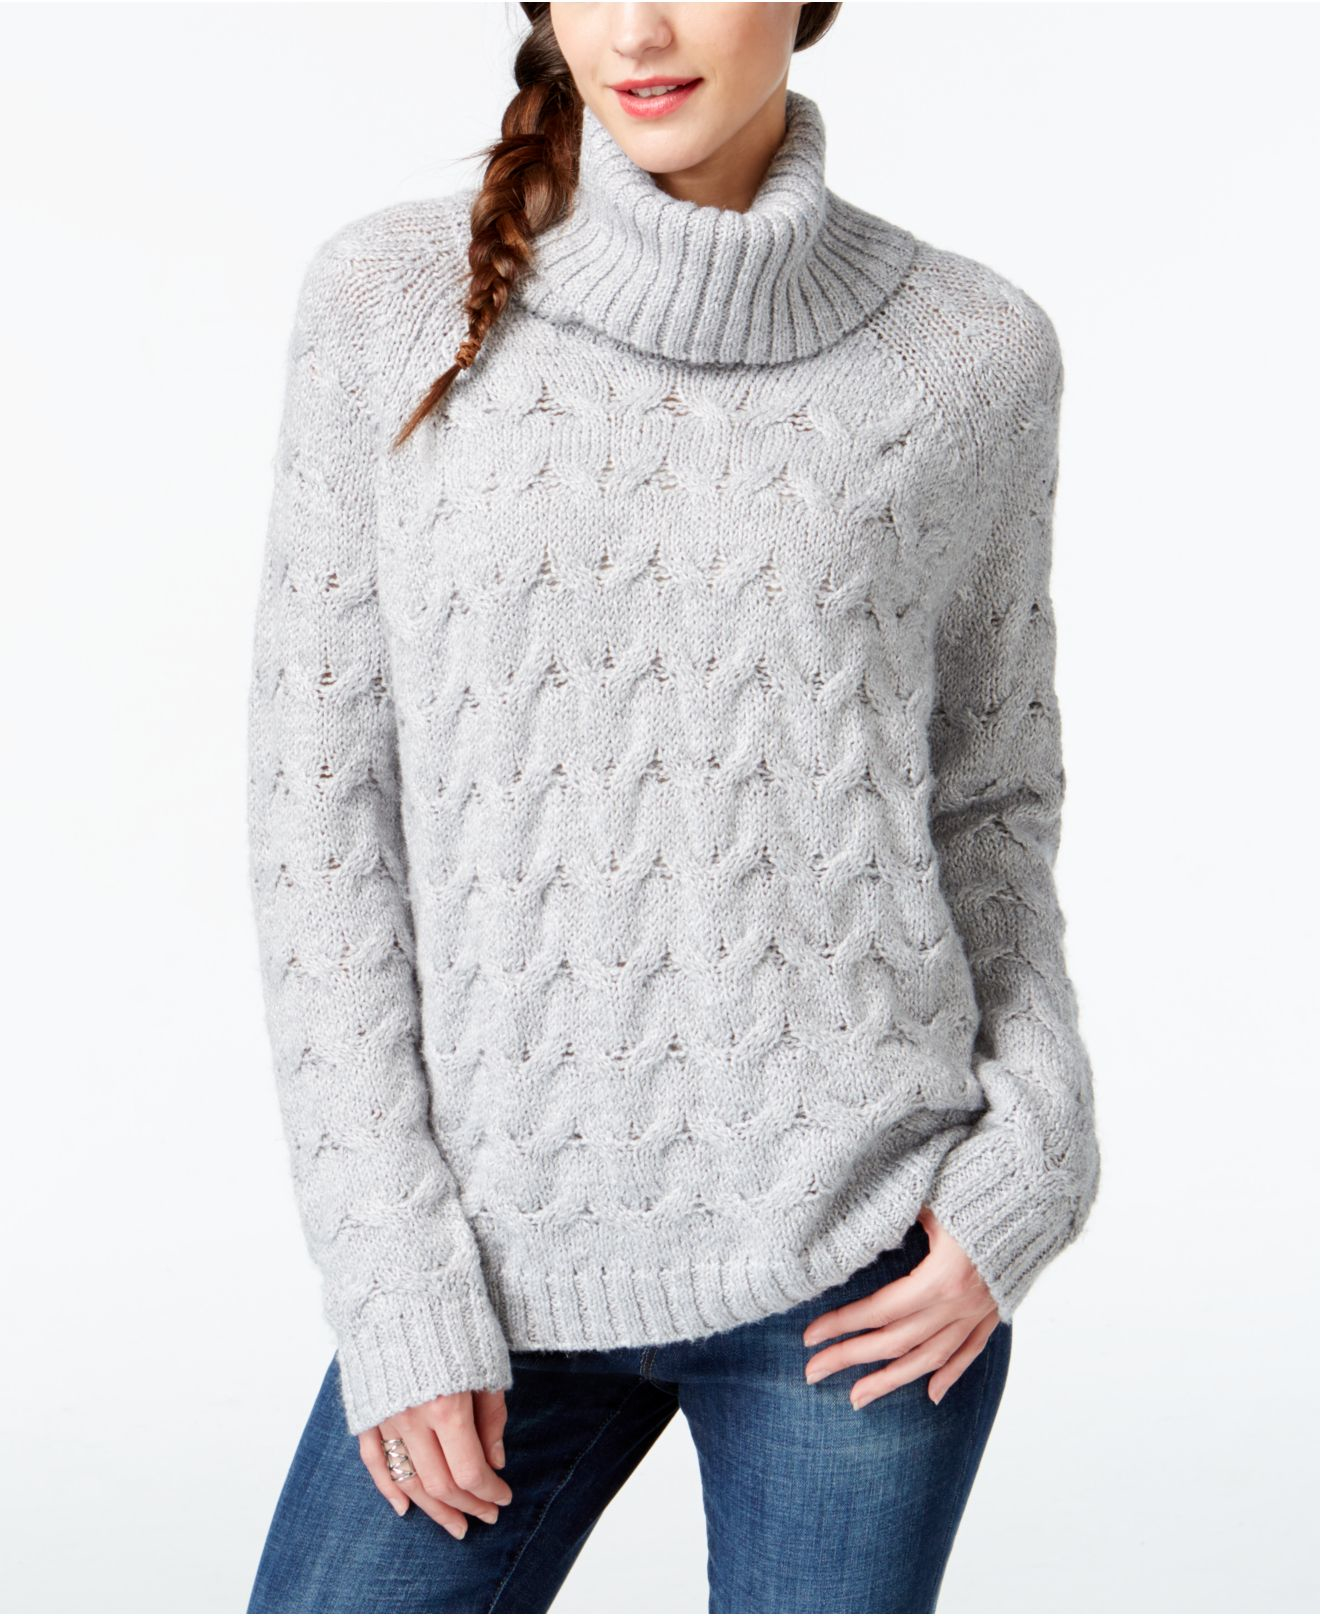 G.h. bass & co. Cable-knit Turtleneck Sweater in Gray | Lyst